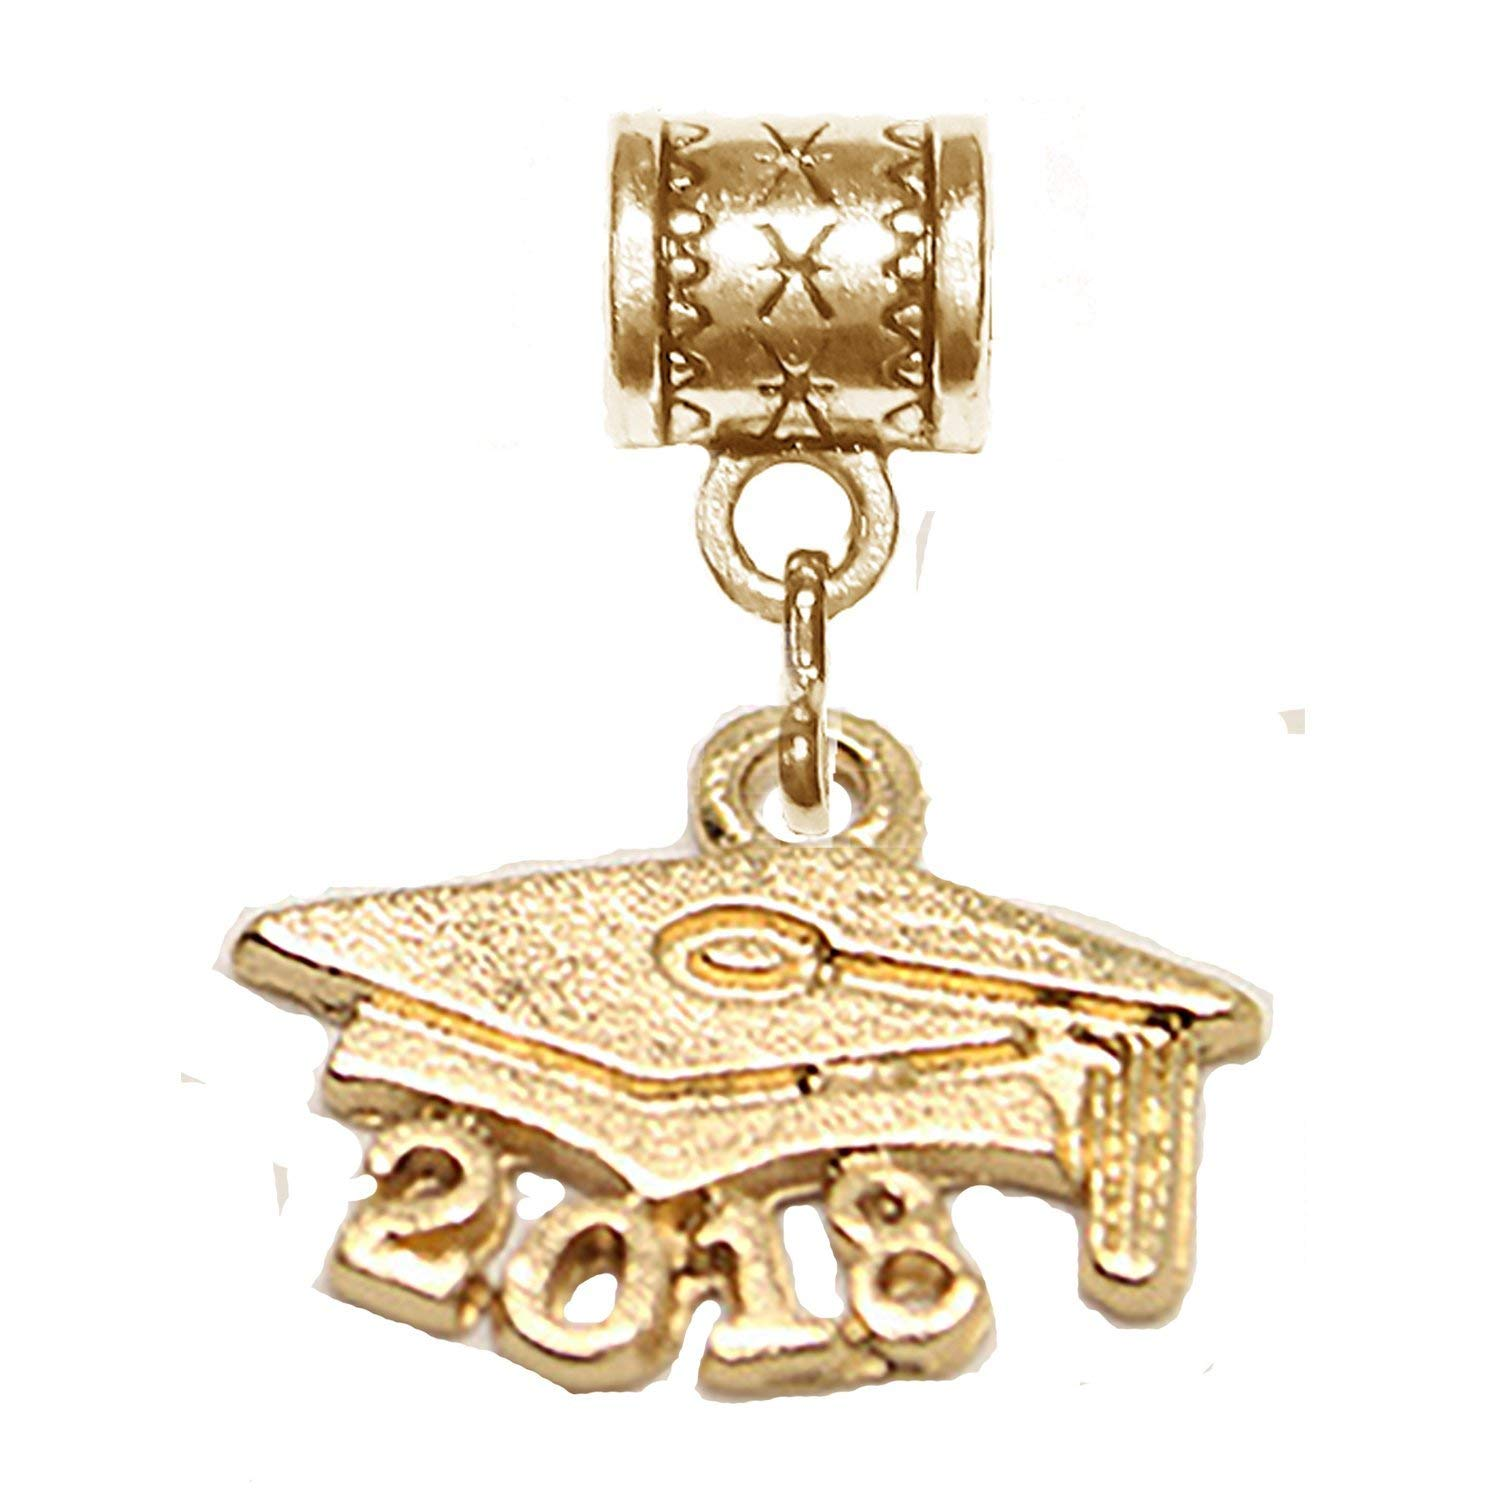 """Mossy Cabin """"Graduate 2018 charm"""" gold hanging charm for large hole style snake chain charm bracelets, neck chains or key chains."""